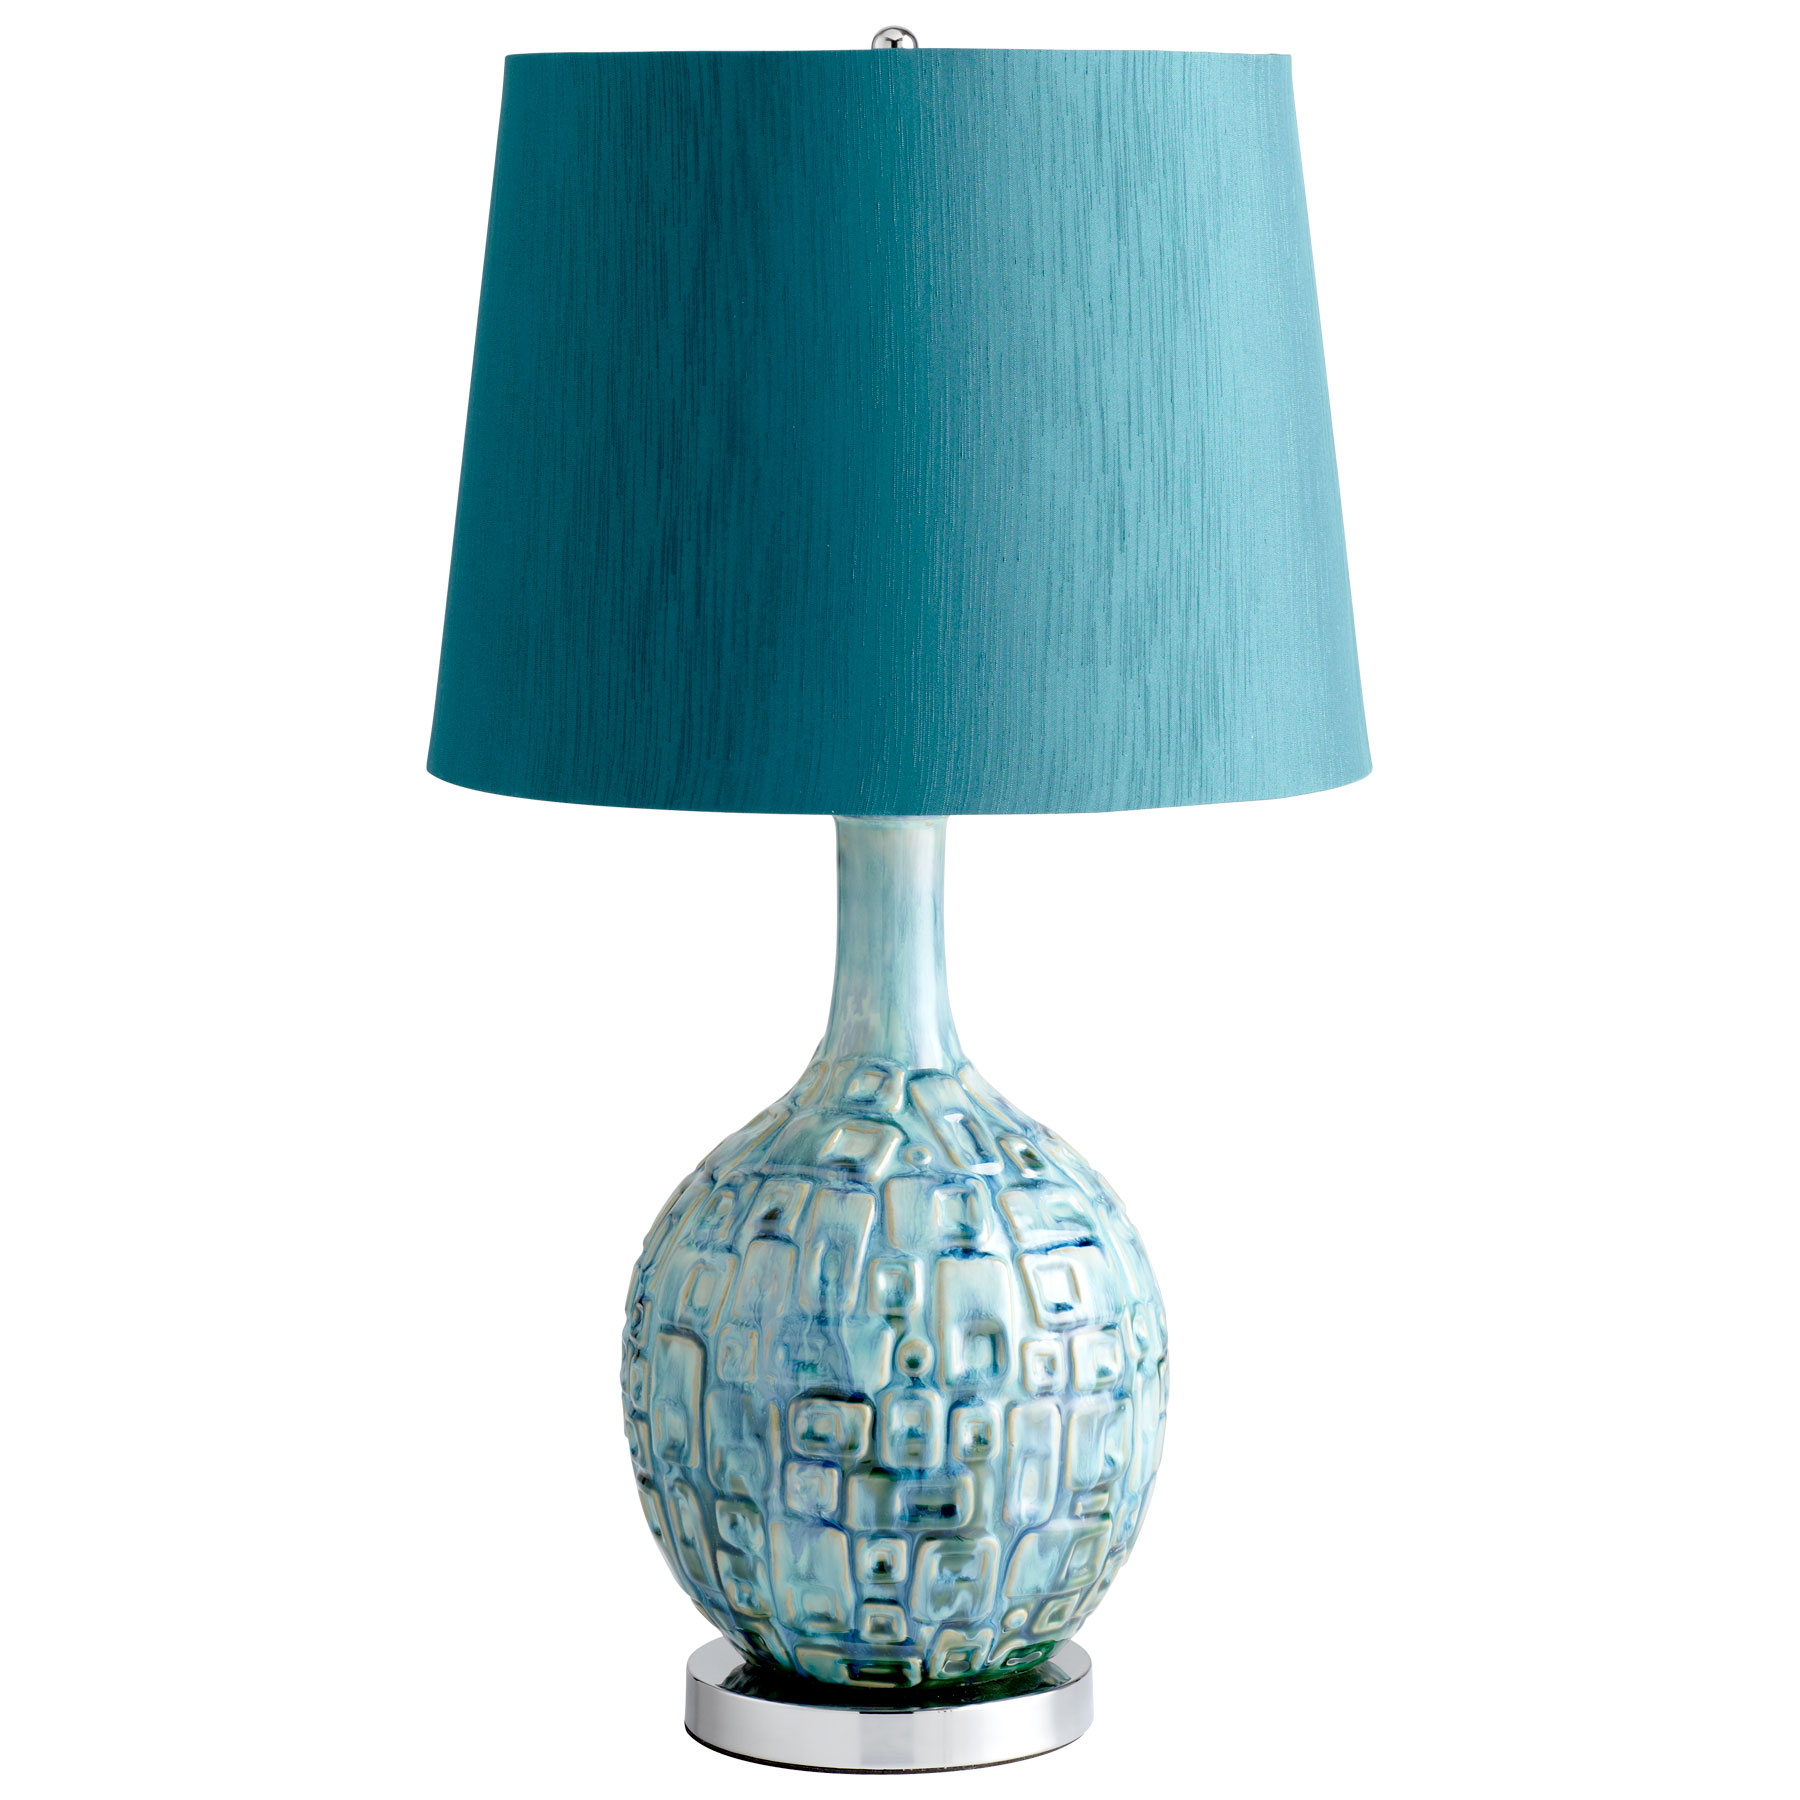 Jordan Coastal Beach Aqua Turquoise Blue Modern Table Lamp